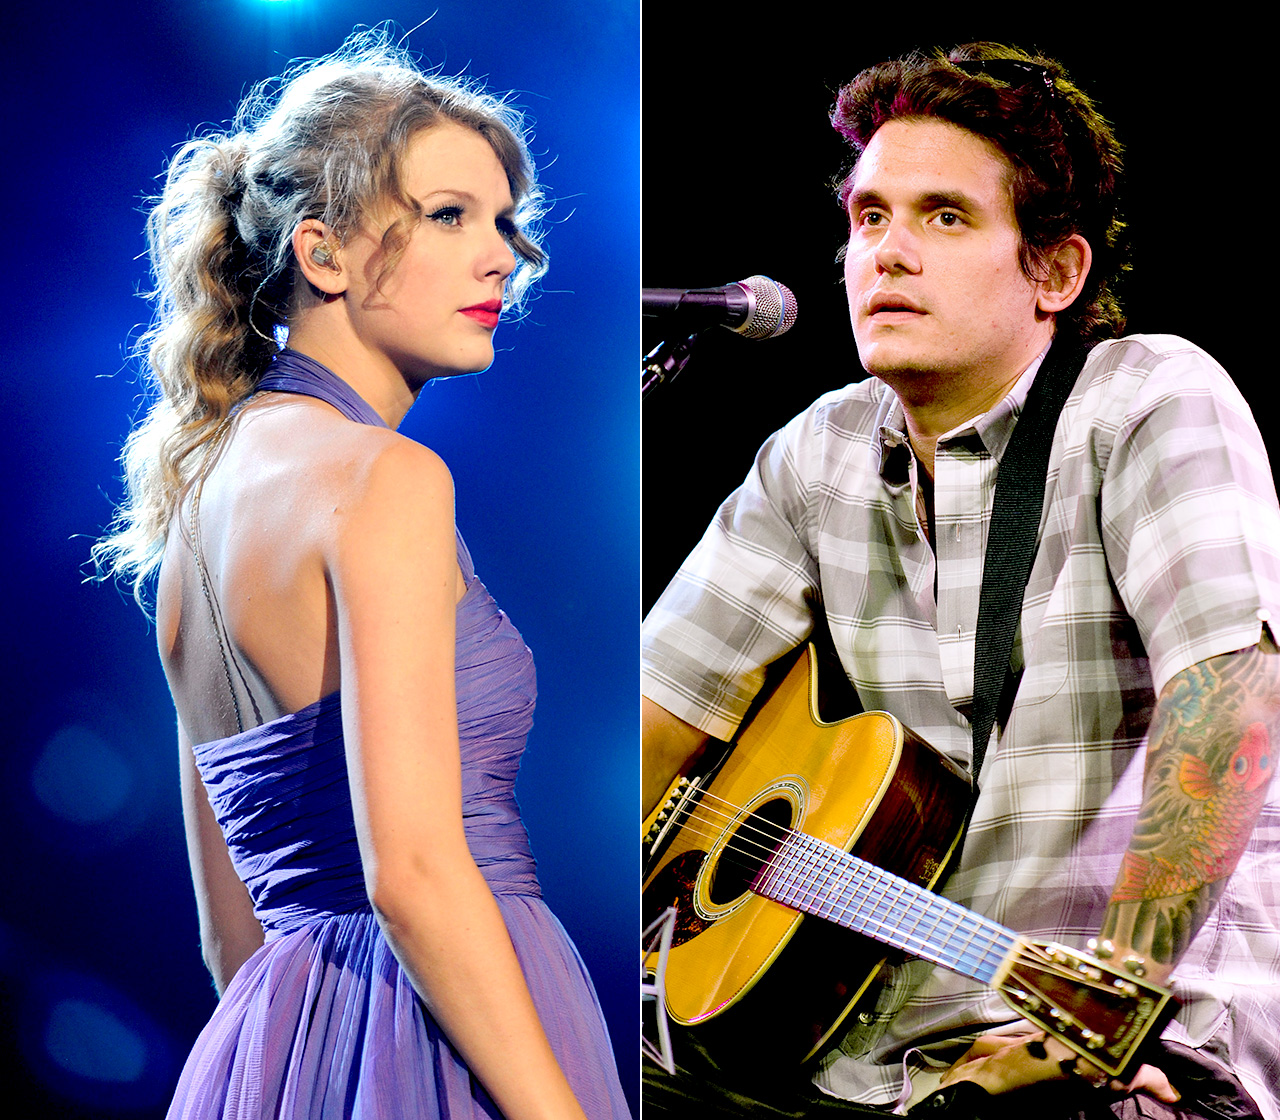 Taylor Swift's Song Lyrics: Celebrities Featured in Her Songs